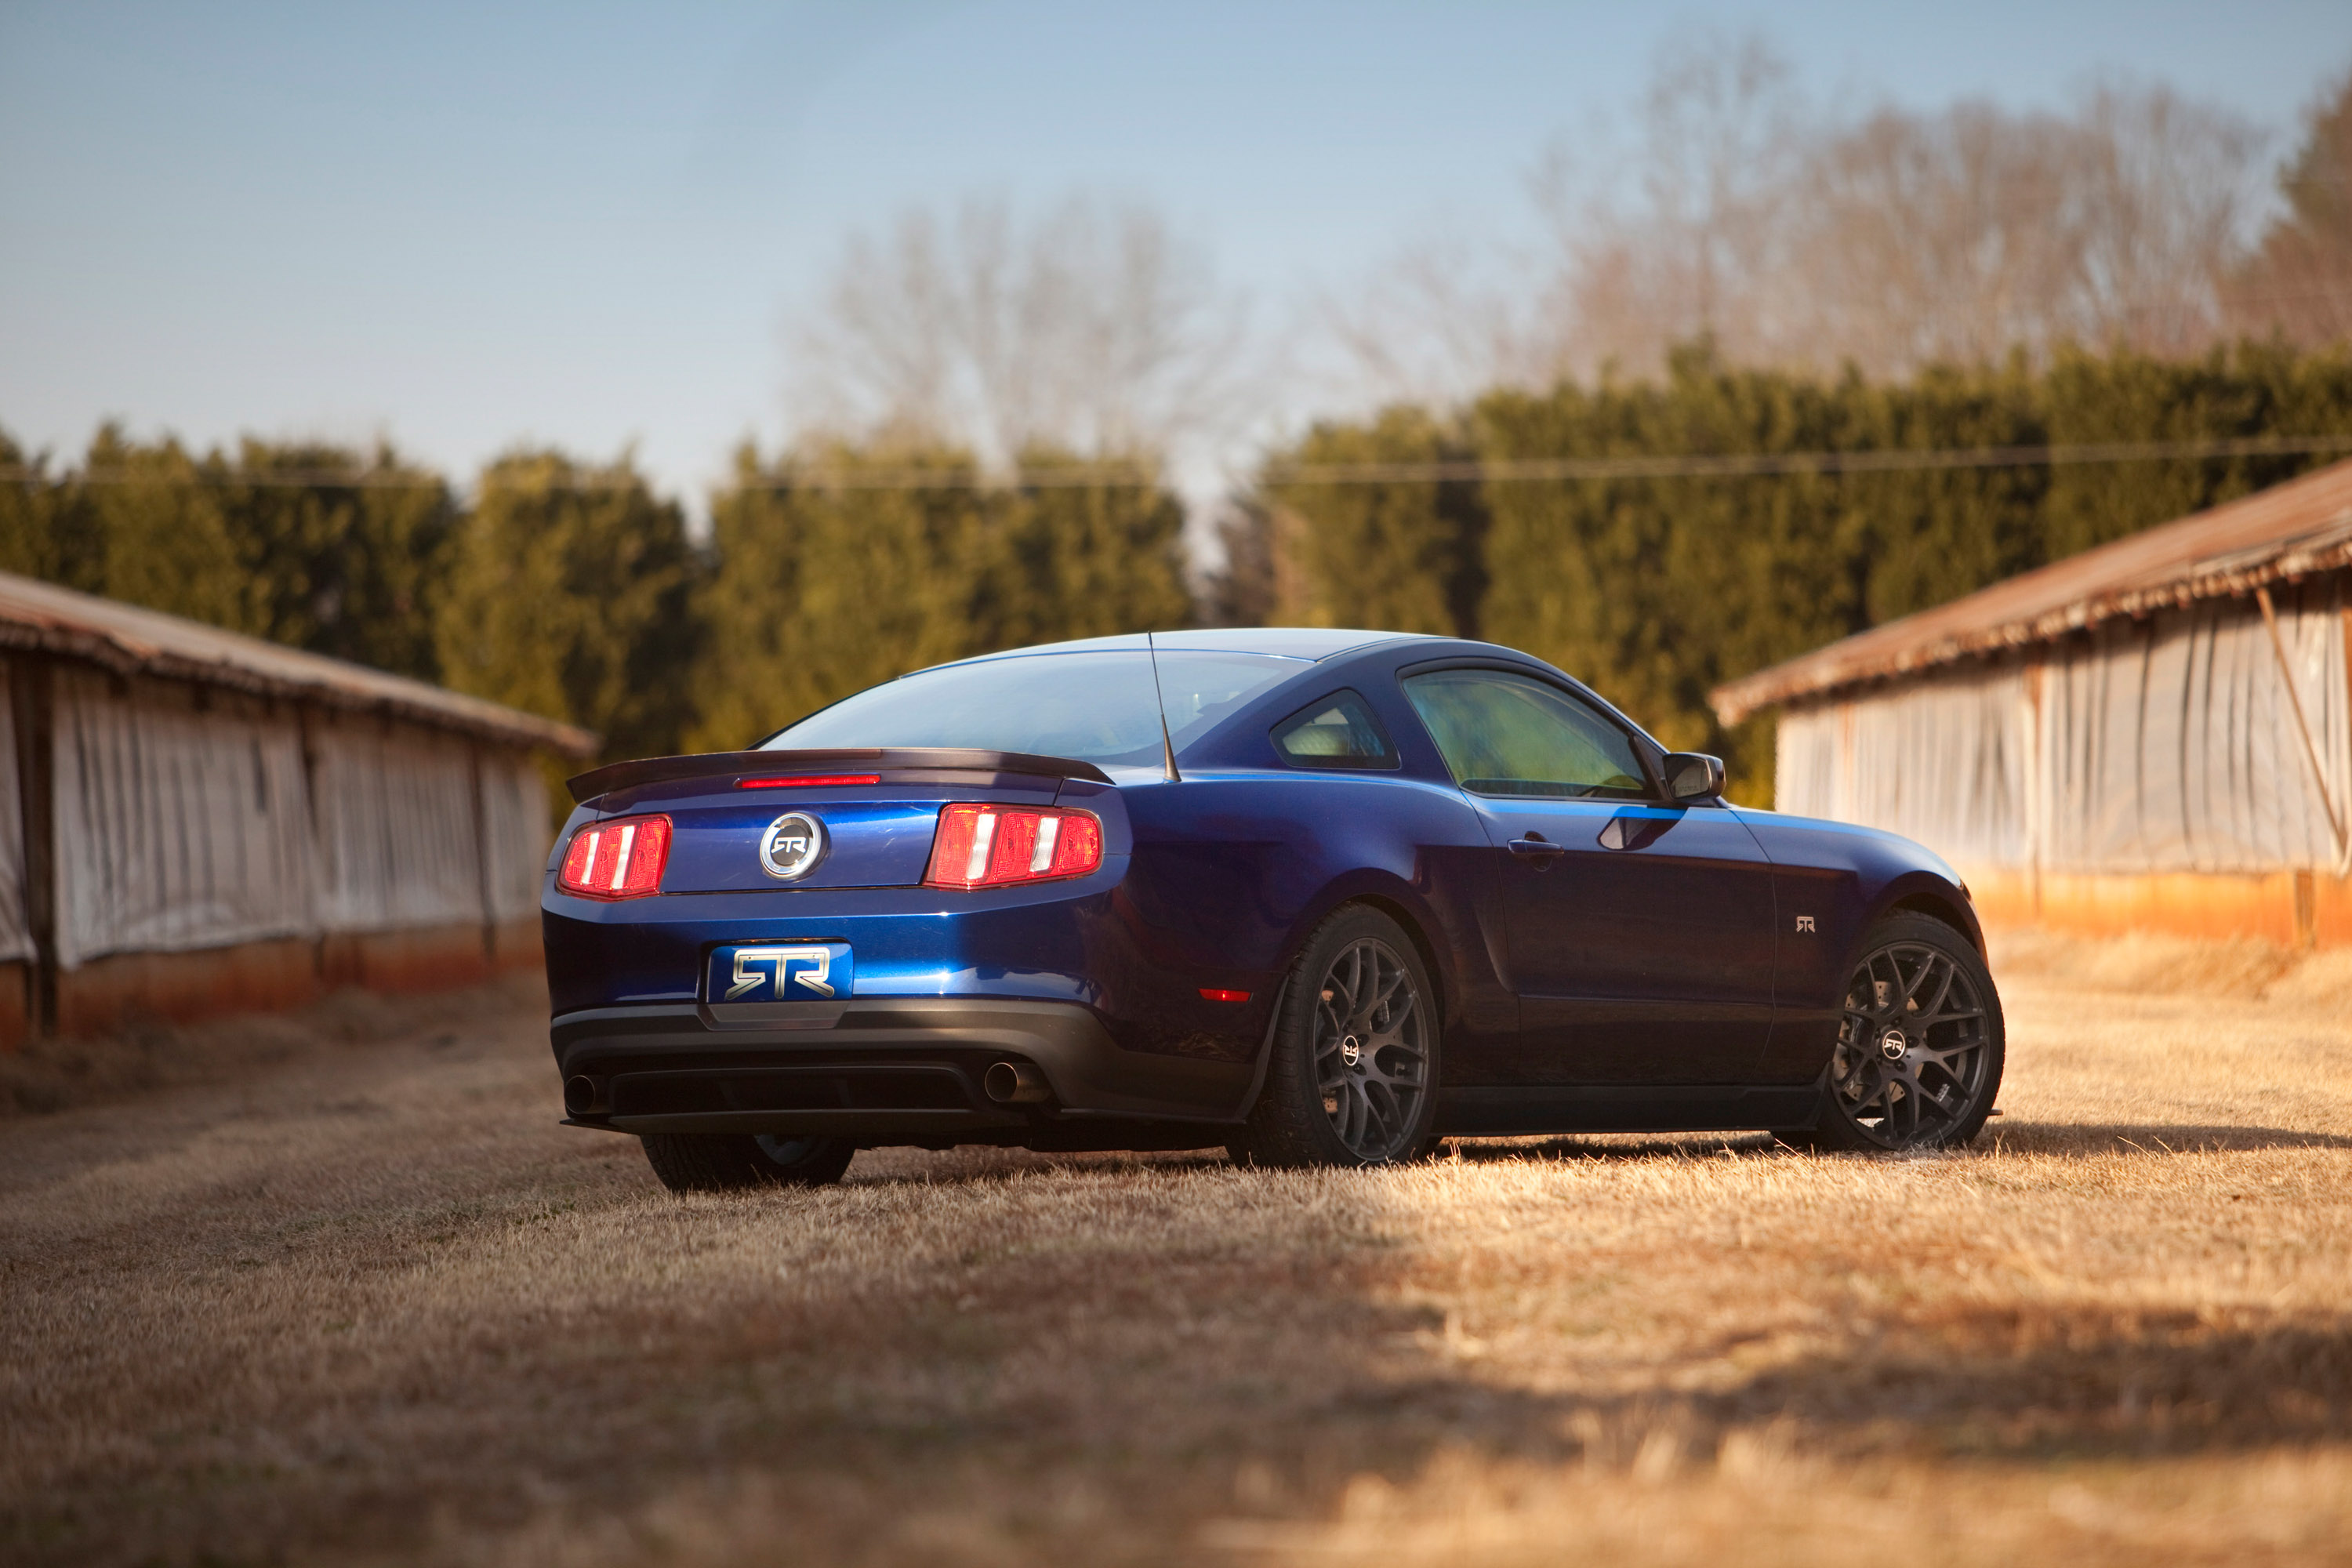 Race Car Wallpapers High Resolution 2011 Ford Mustang Rtr The High End Drift Machine